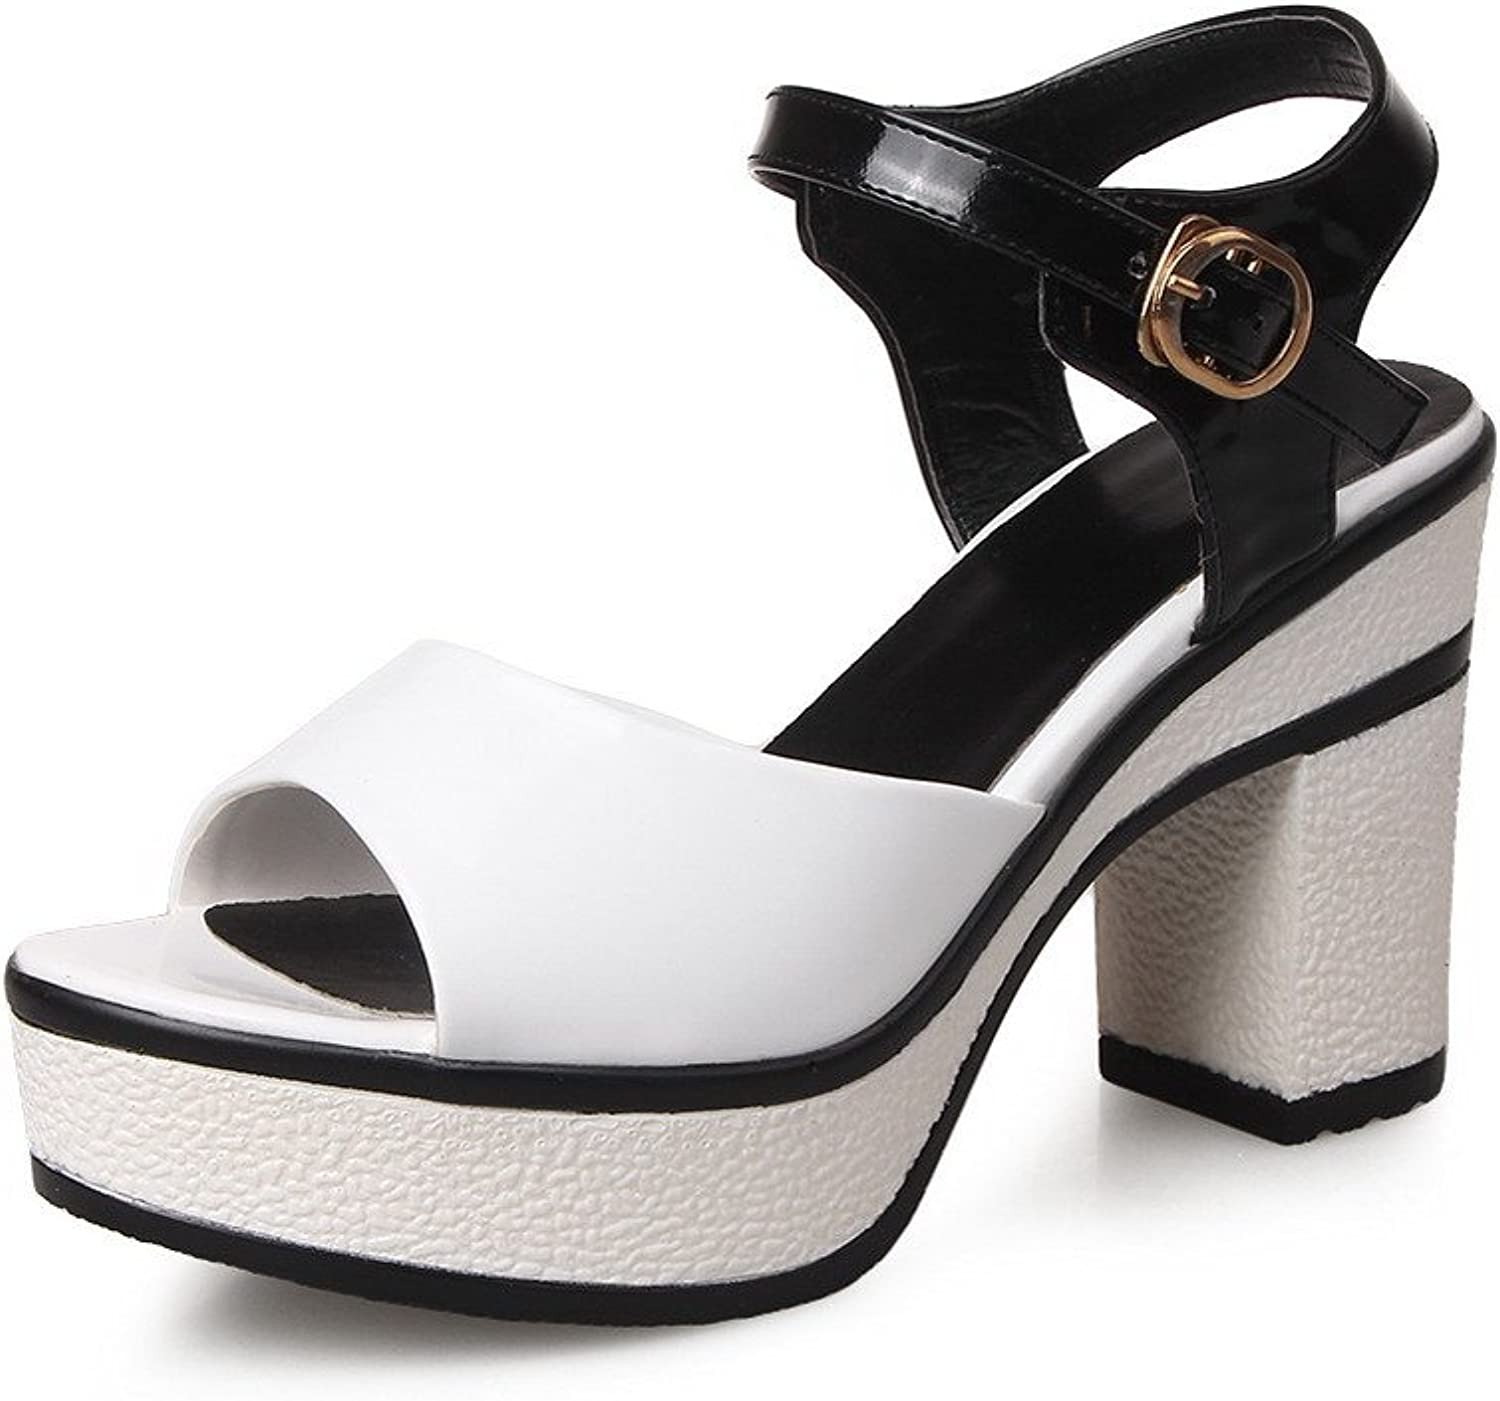 AmoonyFashion Women's Patent Leather Solid Buckle Open Toe High Heels Sandals